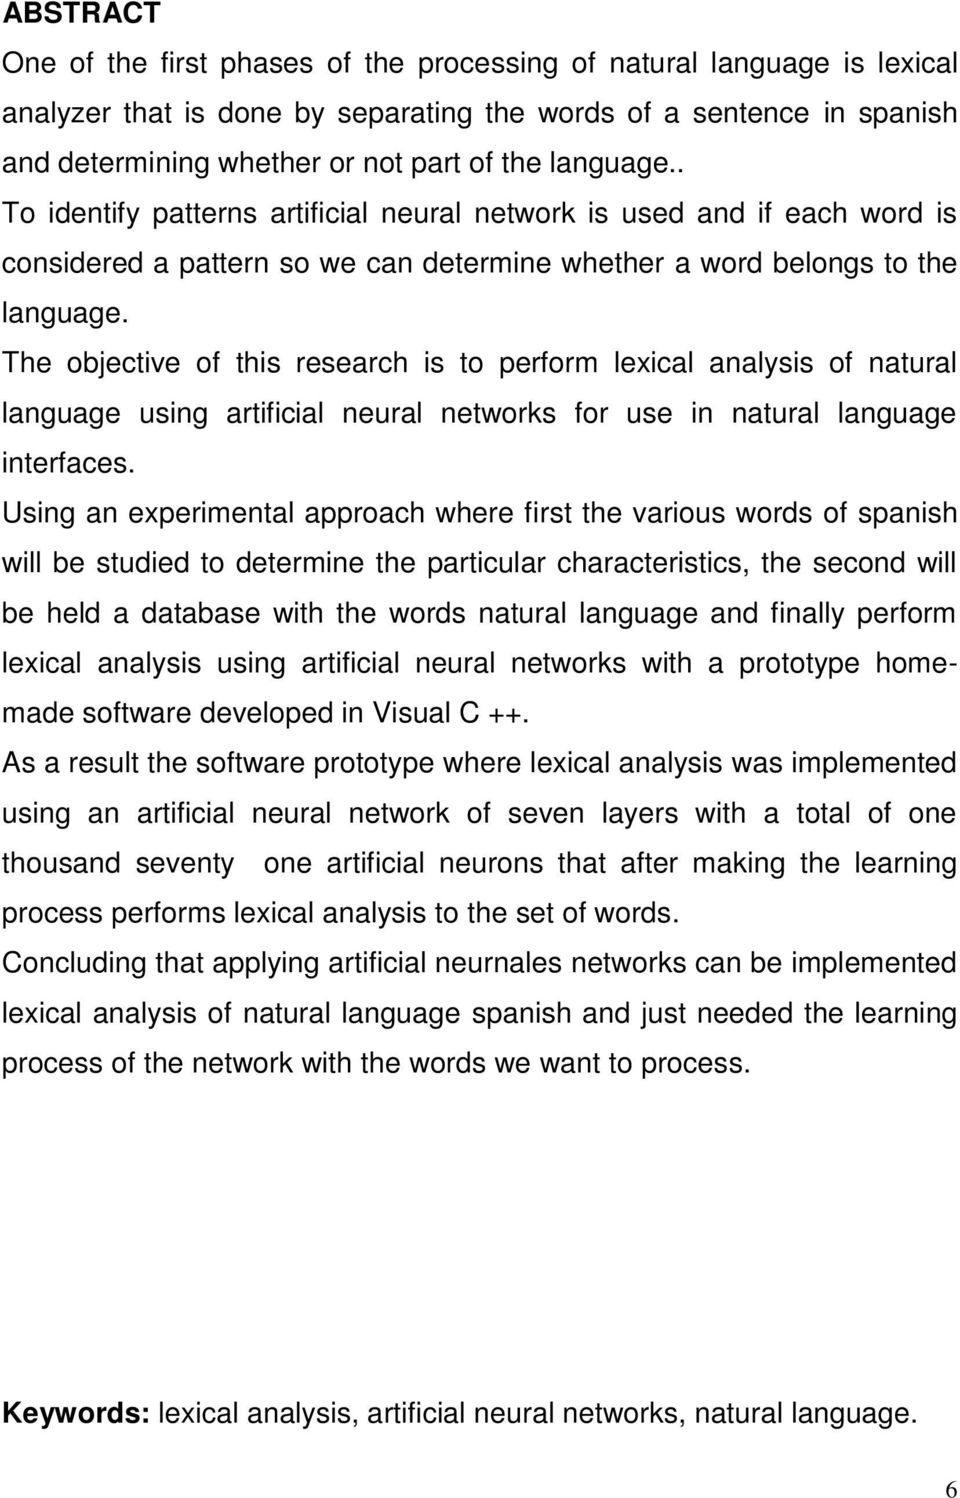 The objective of this research is to perform lexical analysis of natural language using artificial neural networks for use in natural language interfaces.